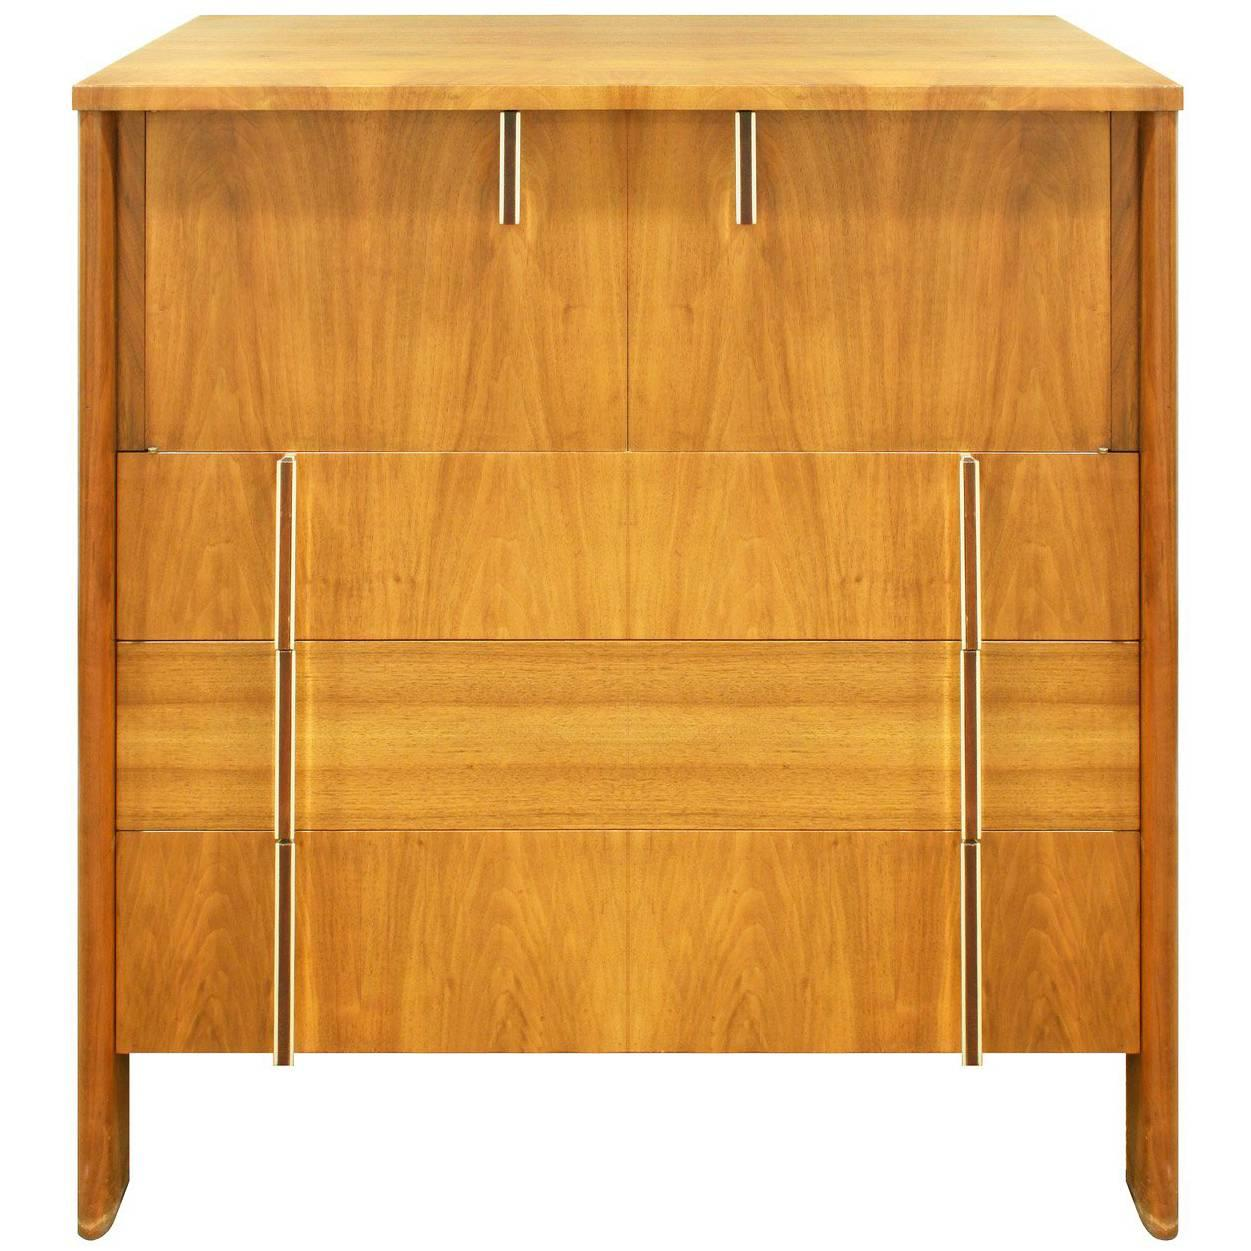 John Widdicomb Tall Chest in Walnut with Rosewood and Chrome Pulls, 1950s